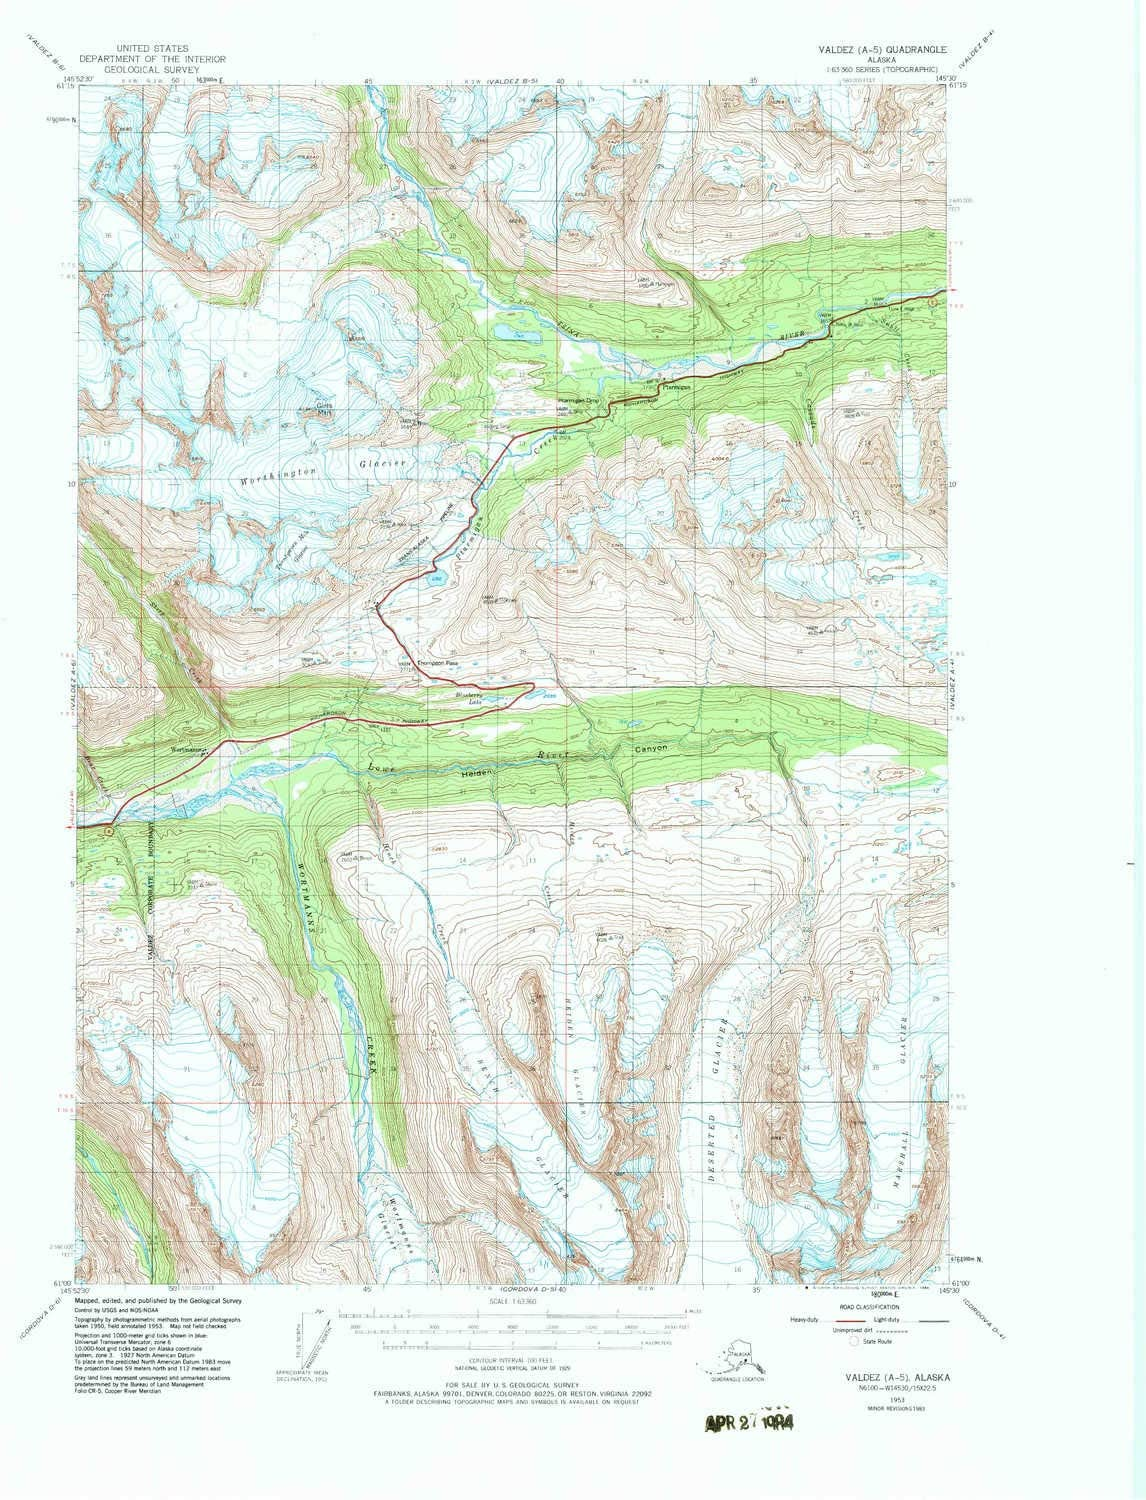 100% quality warranty Max 42% OFF YellowMaps Valdez A 5 AK topo X Scale Minute 1:63360 15 map